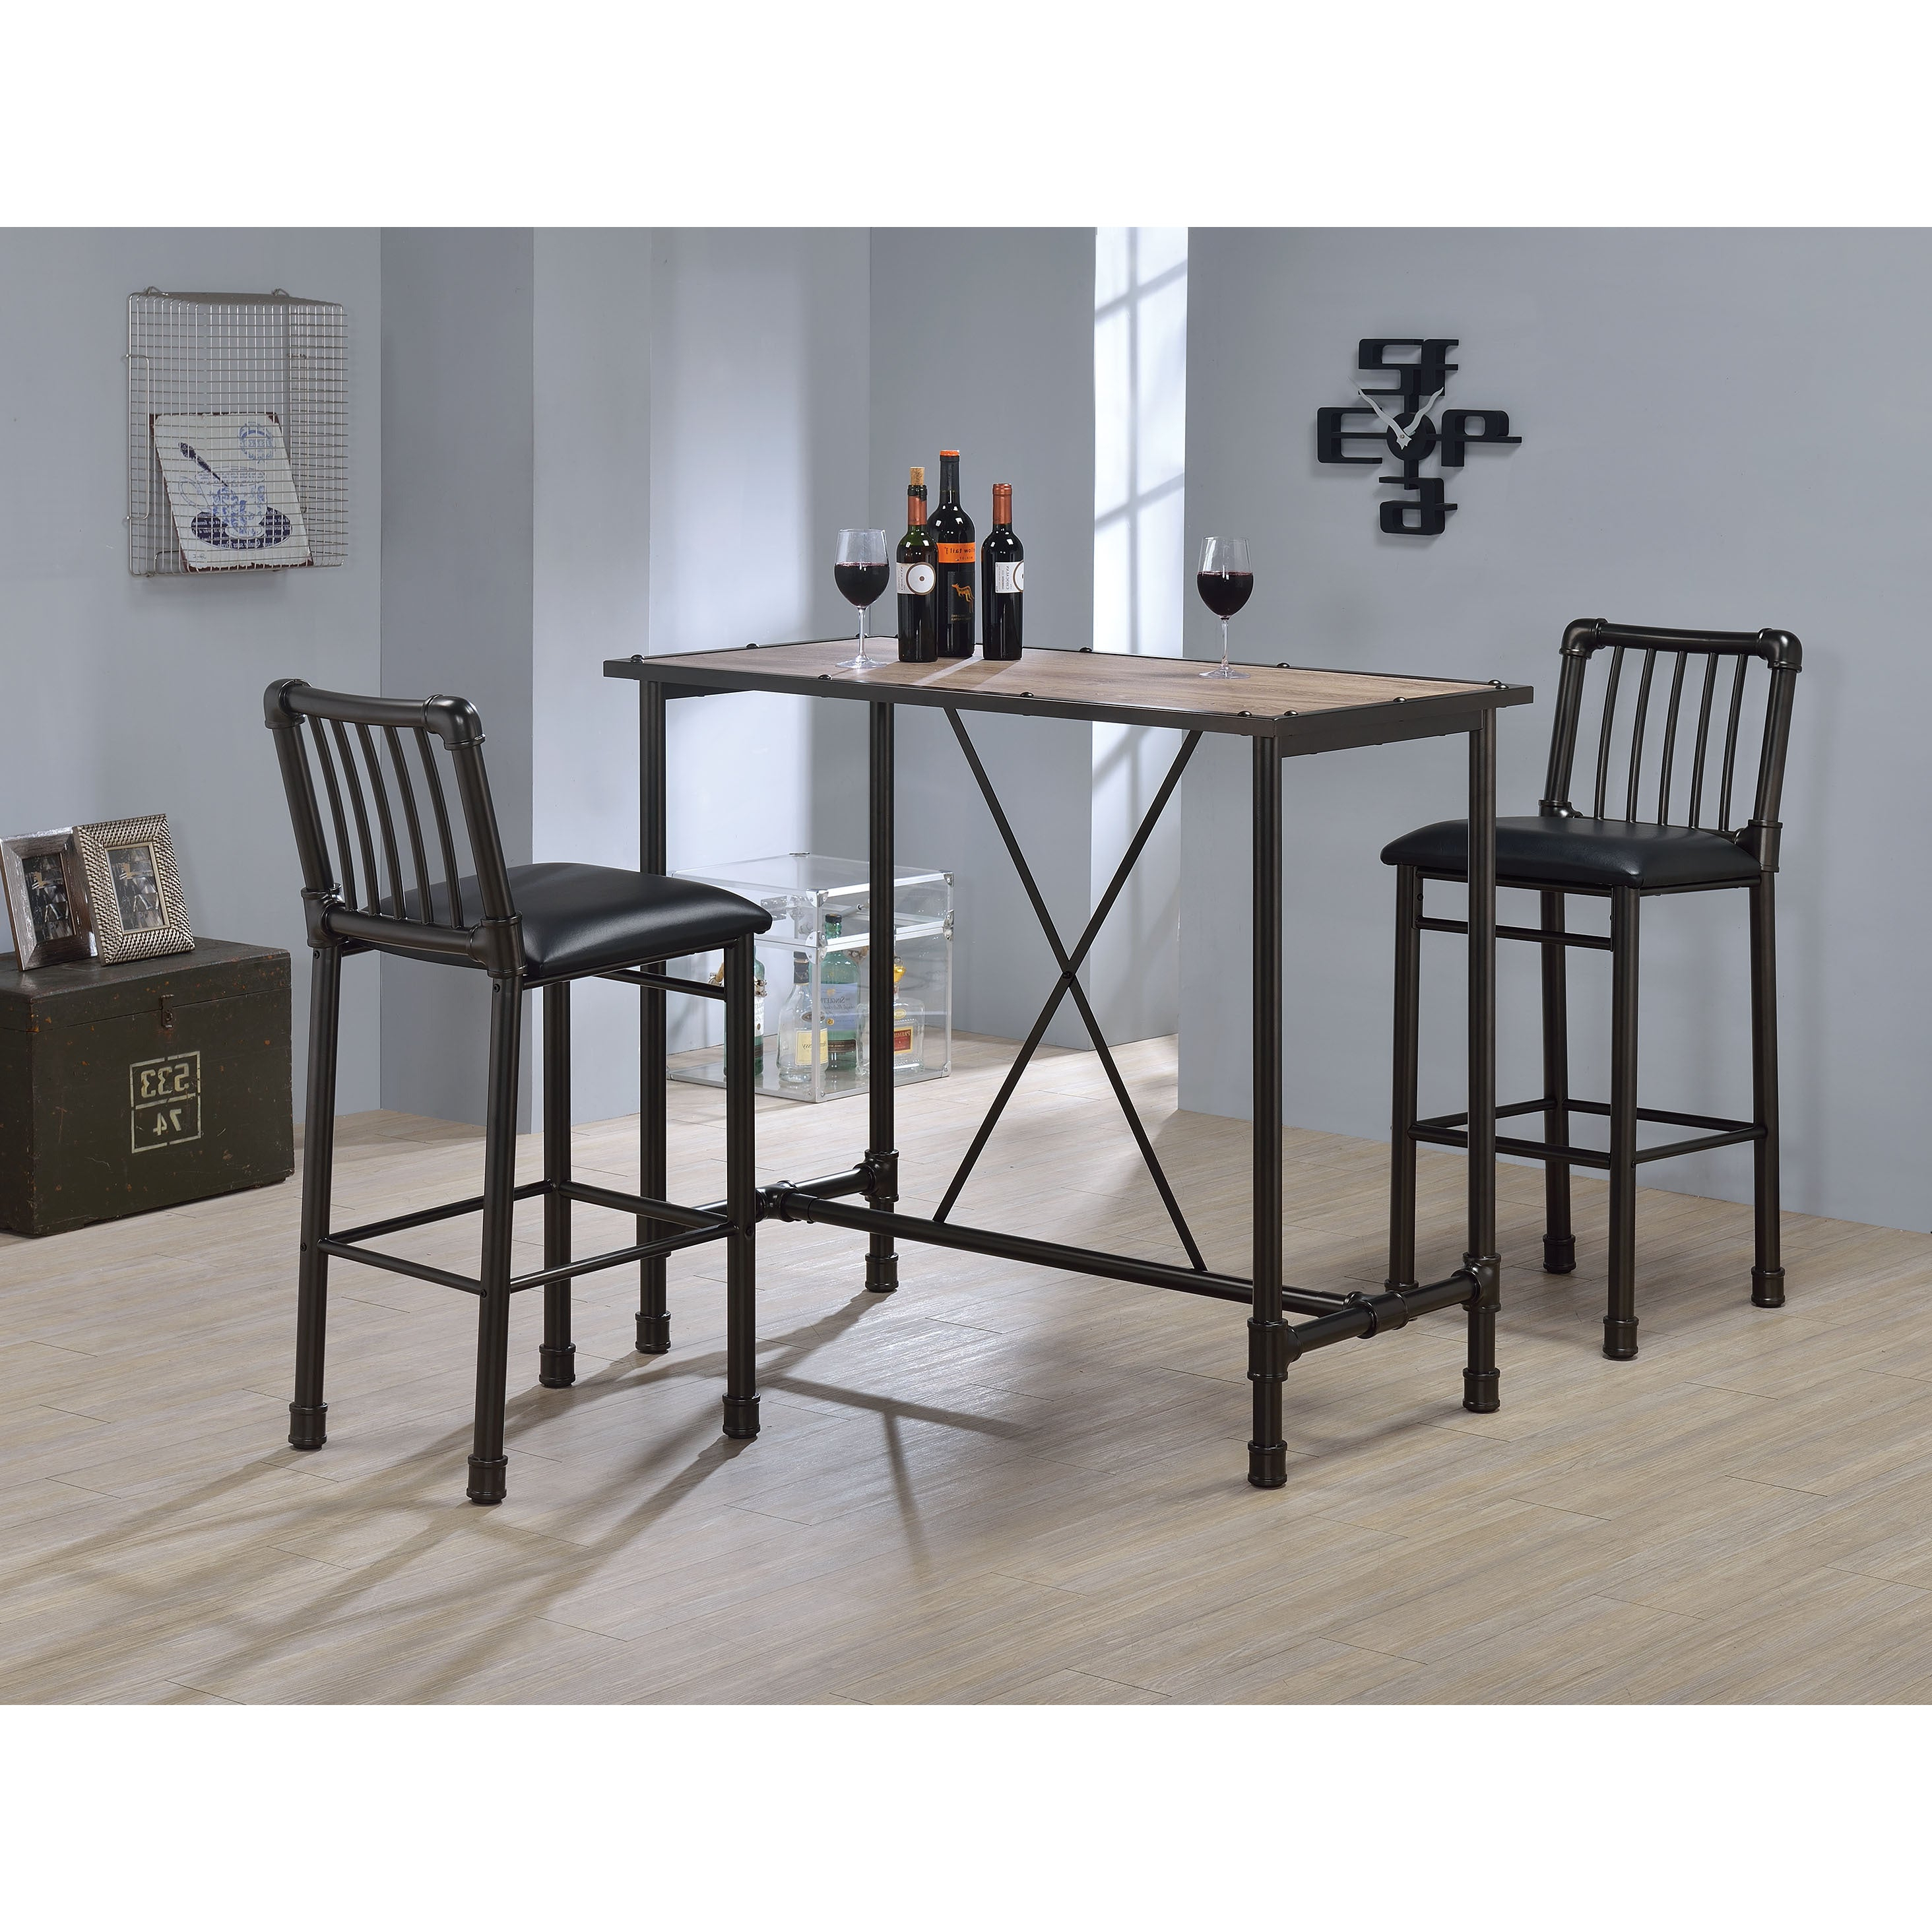 Recent Buy Modern & Contemporary Bar & Pub Tables Online At Overstock